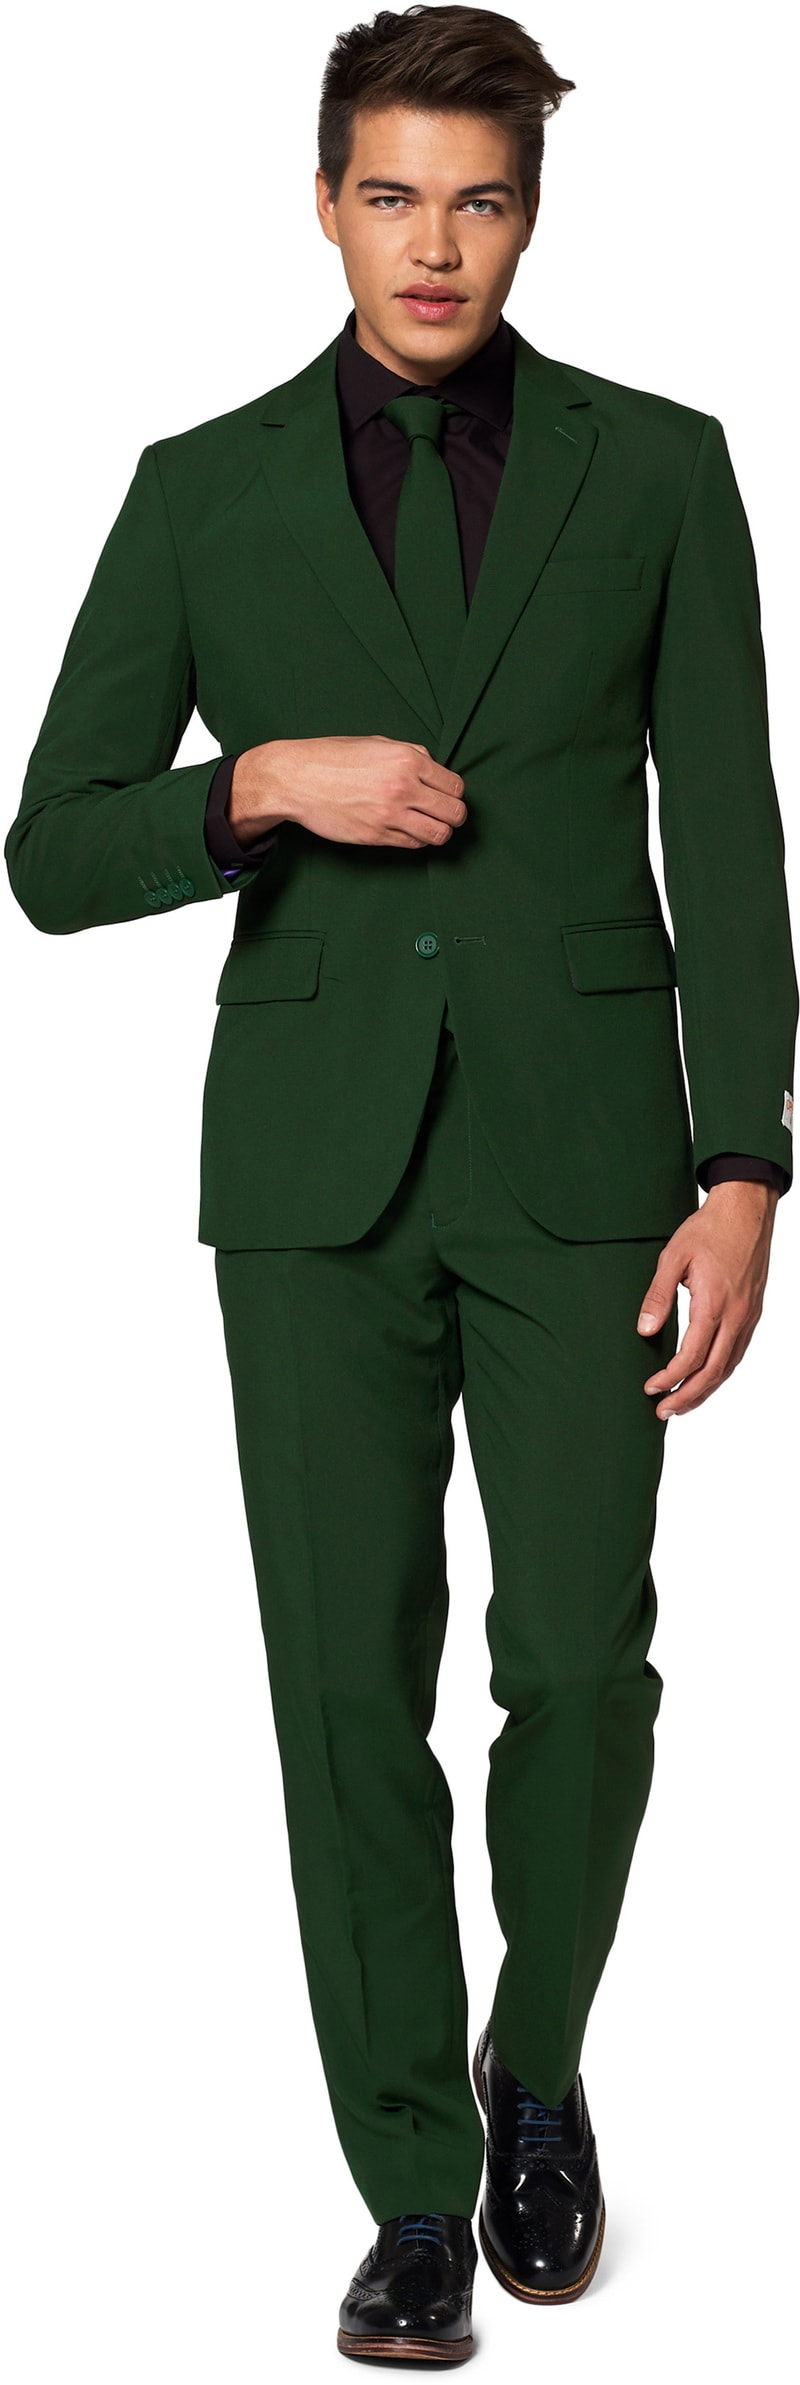 OppoSuits Glorious Green Suit photo 0